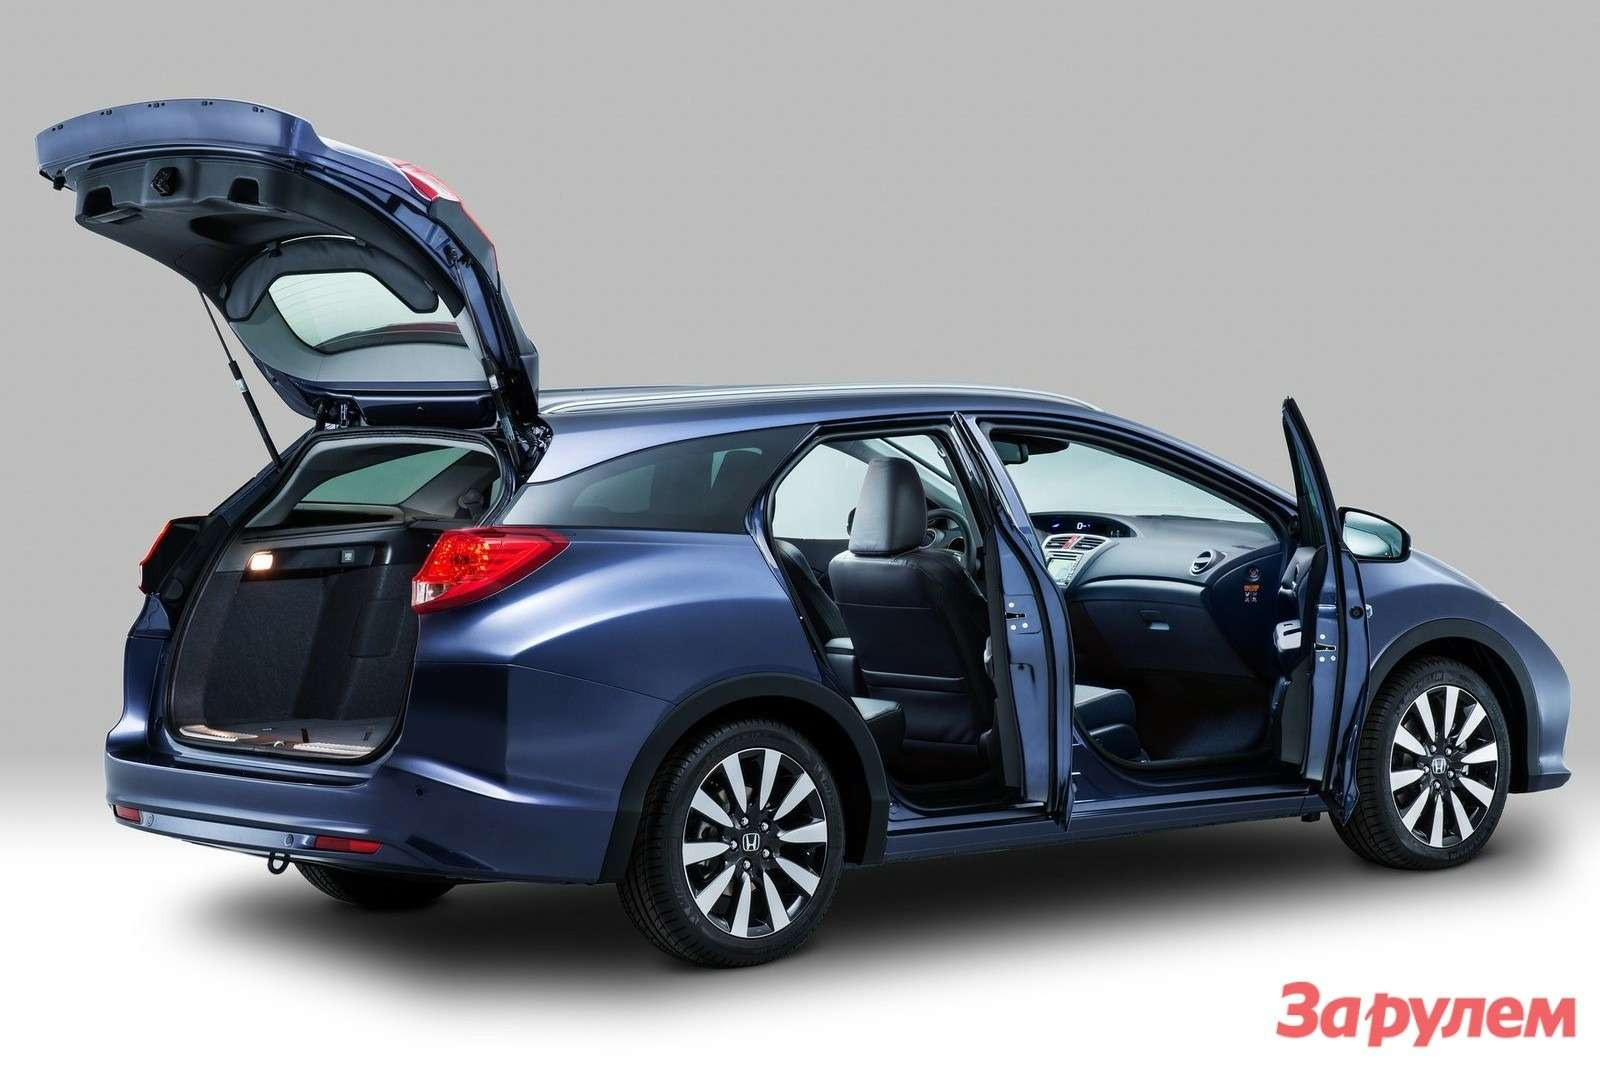 Honda Civic Tourer 2014 1600x1200 wallpaper 06